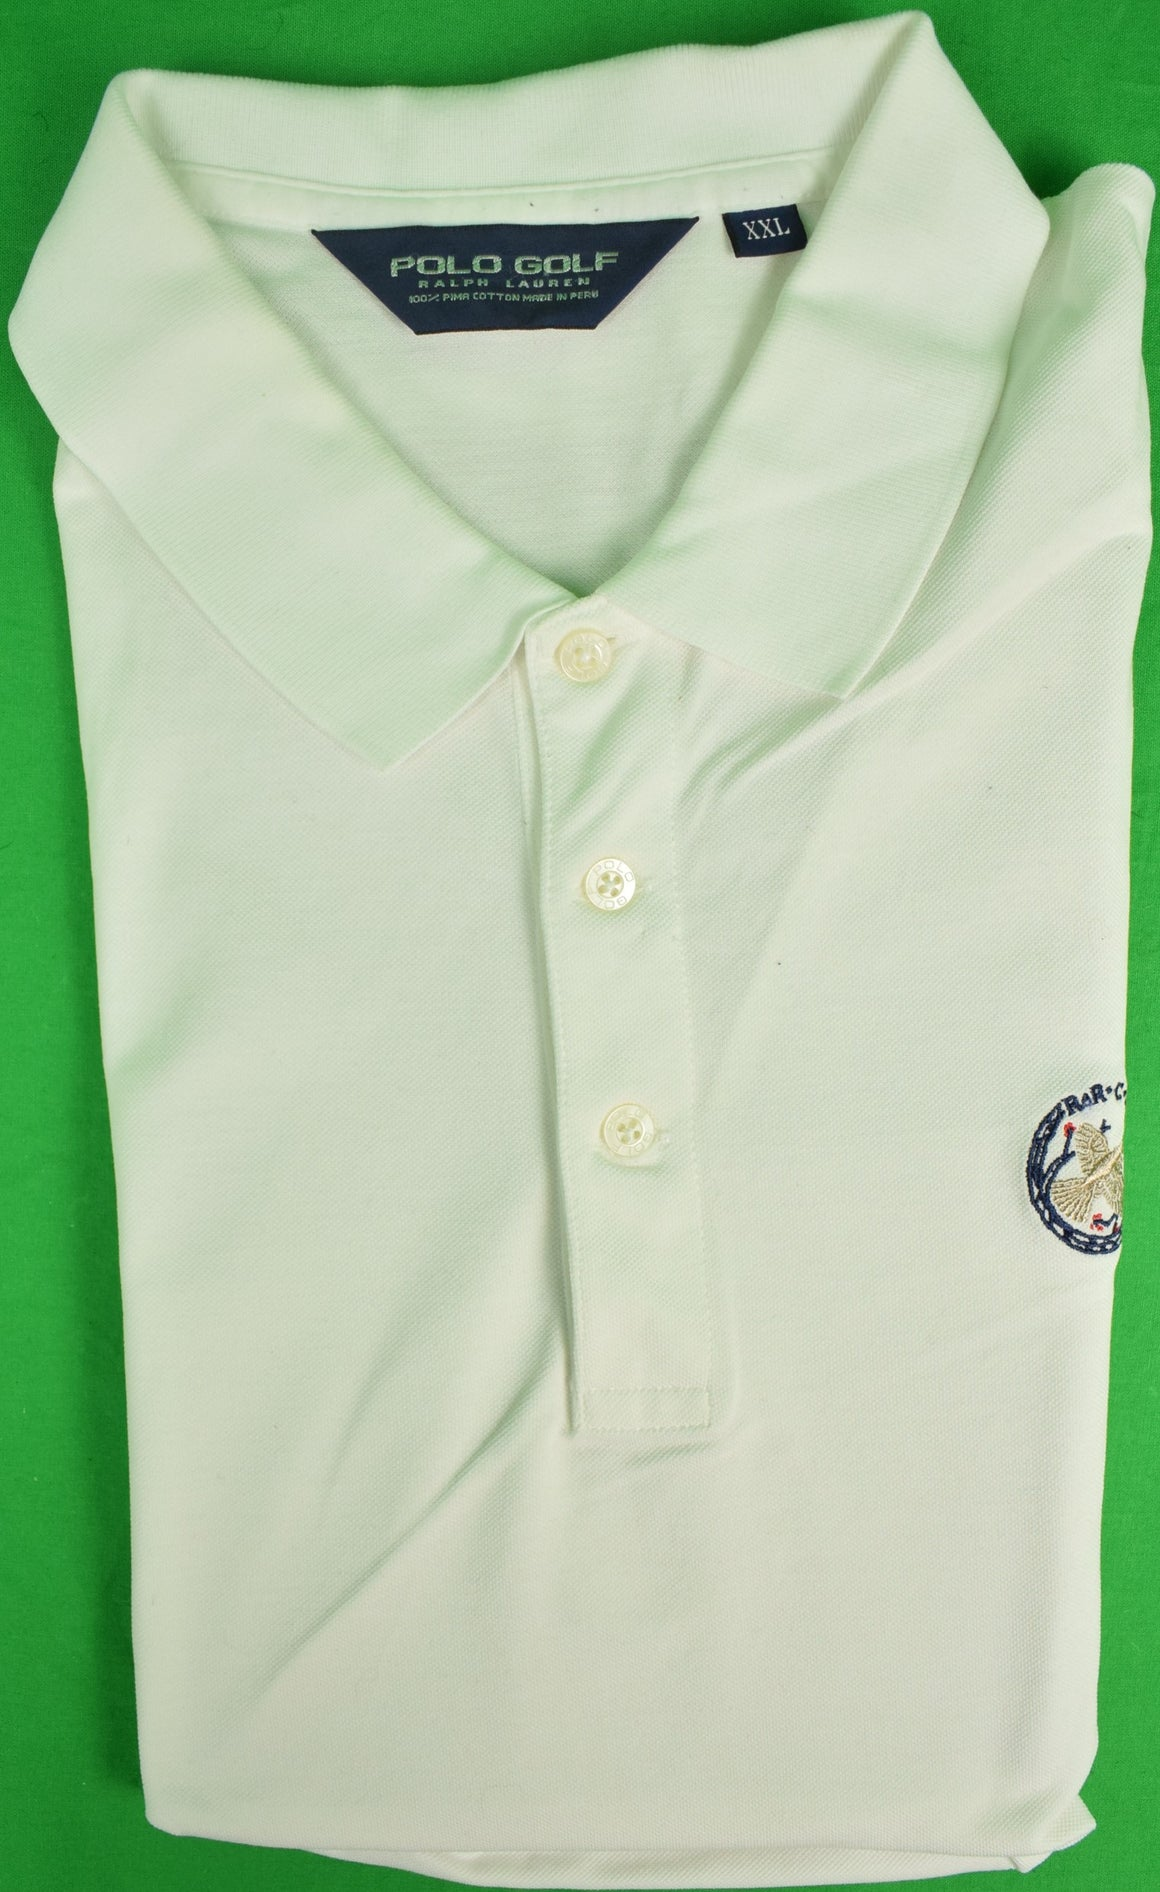 Ralph Lauren Polo Golf White S/S Shirt w/ Rolling Rock Club Logo Sz: XXL